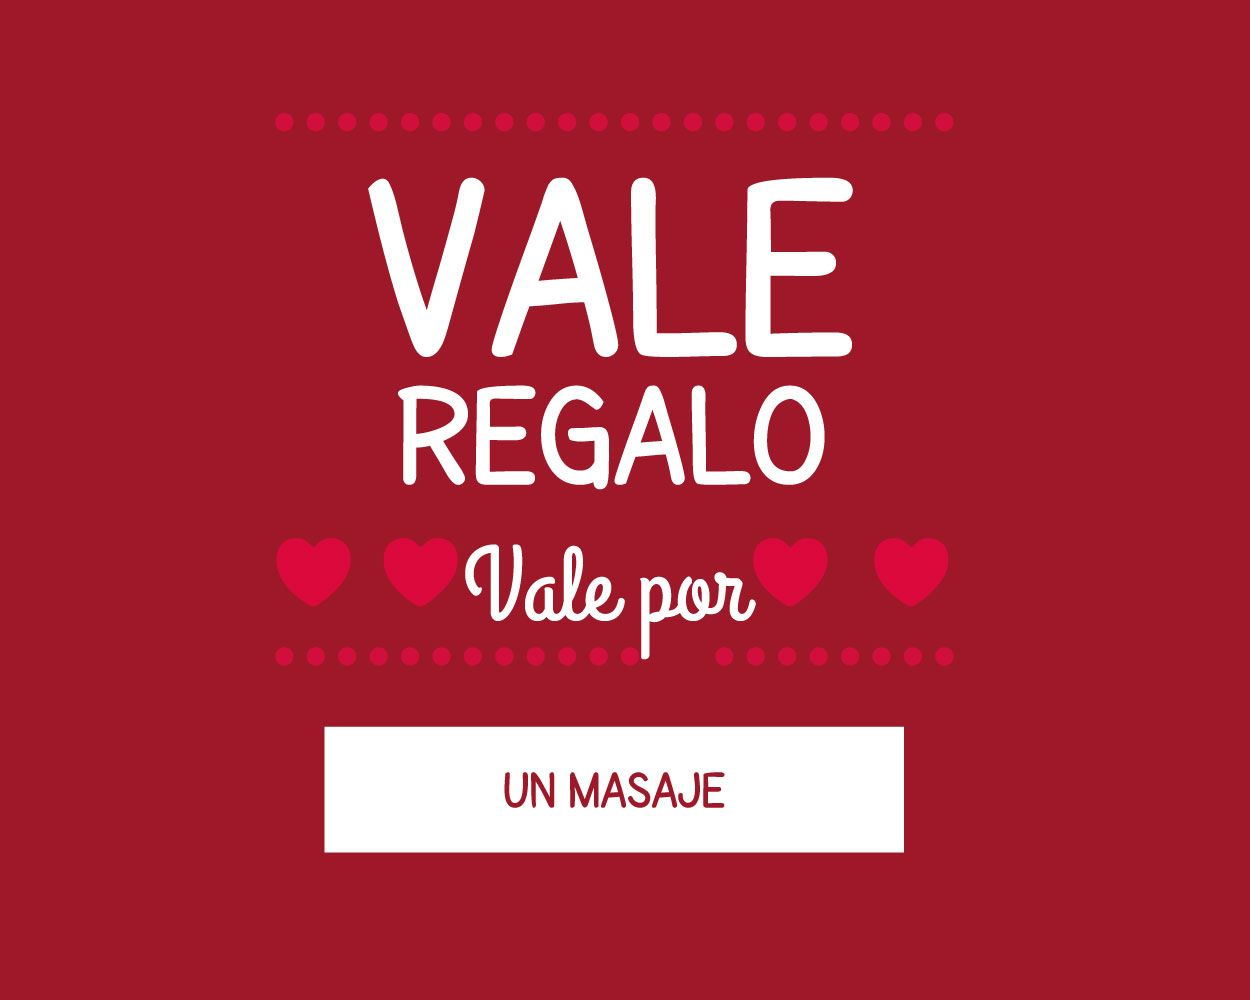 Vale regalo masaje imprimibles pinterest vale for Tutto in regalo gratis